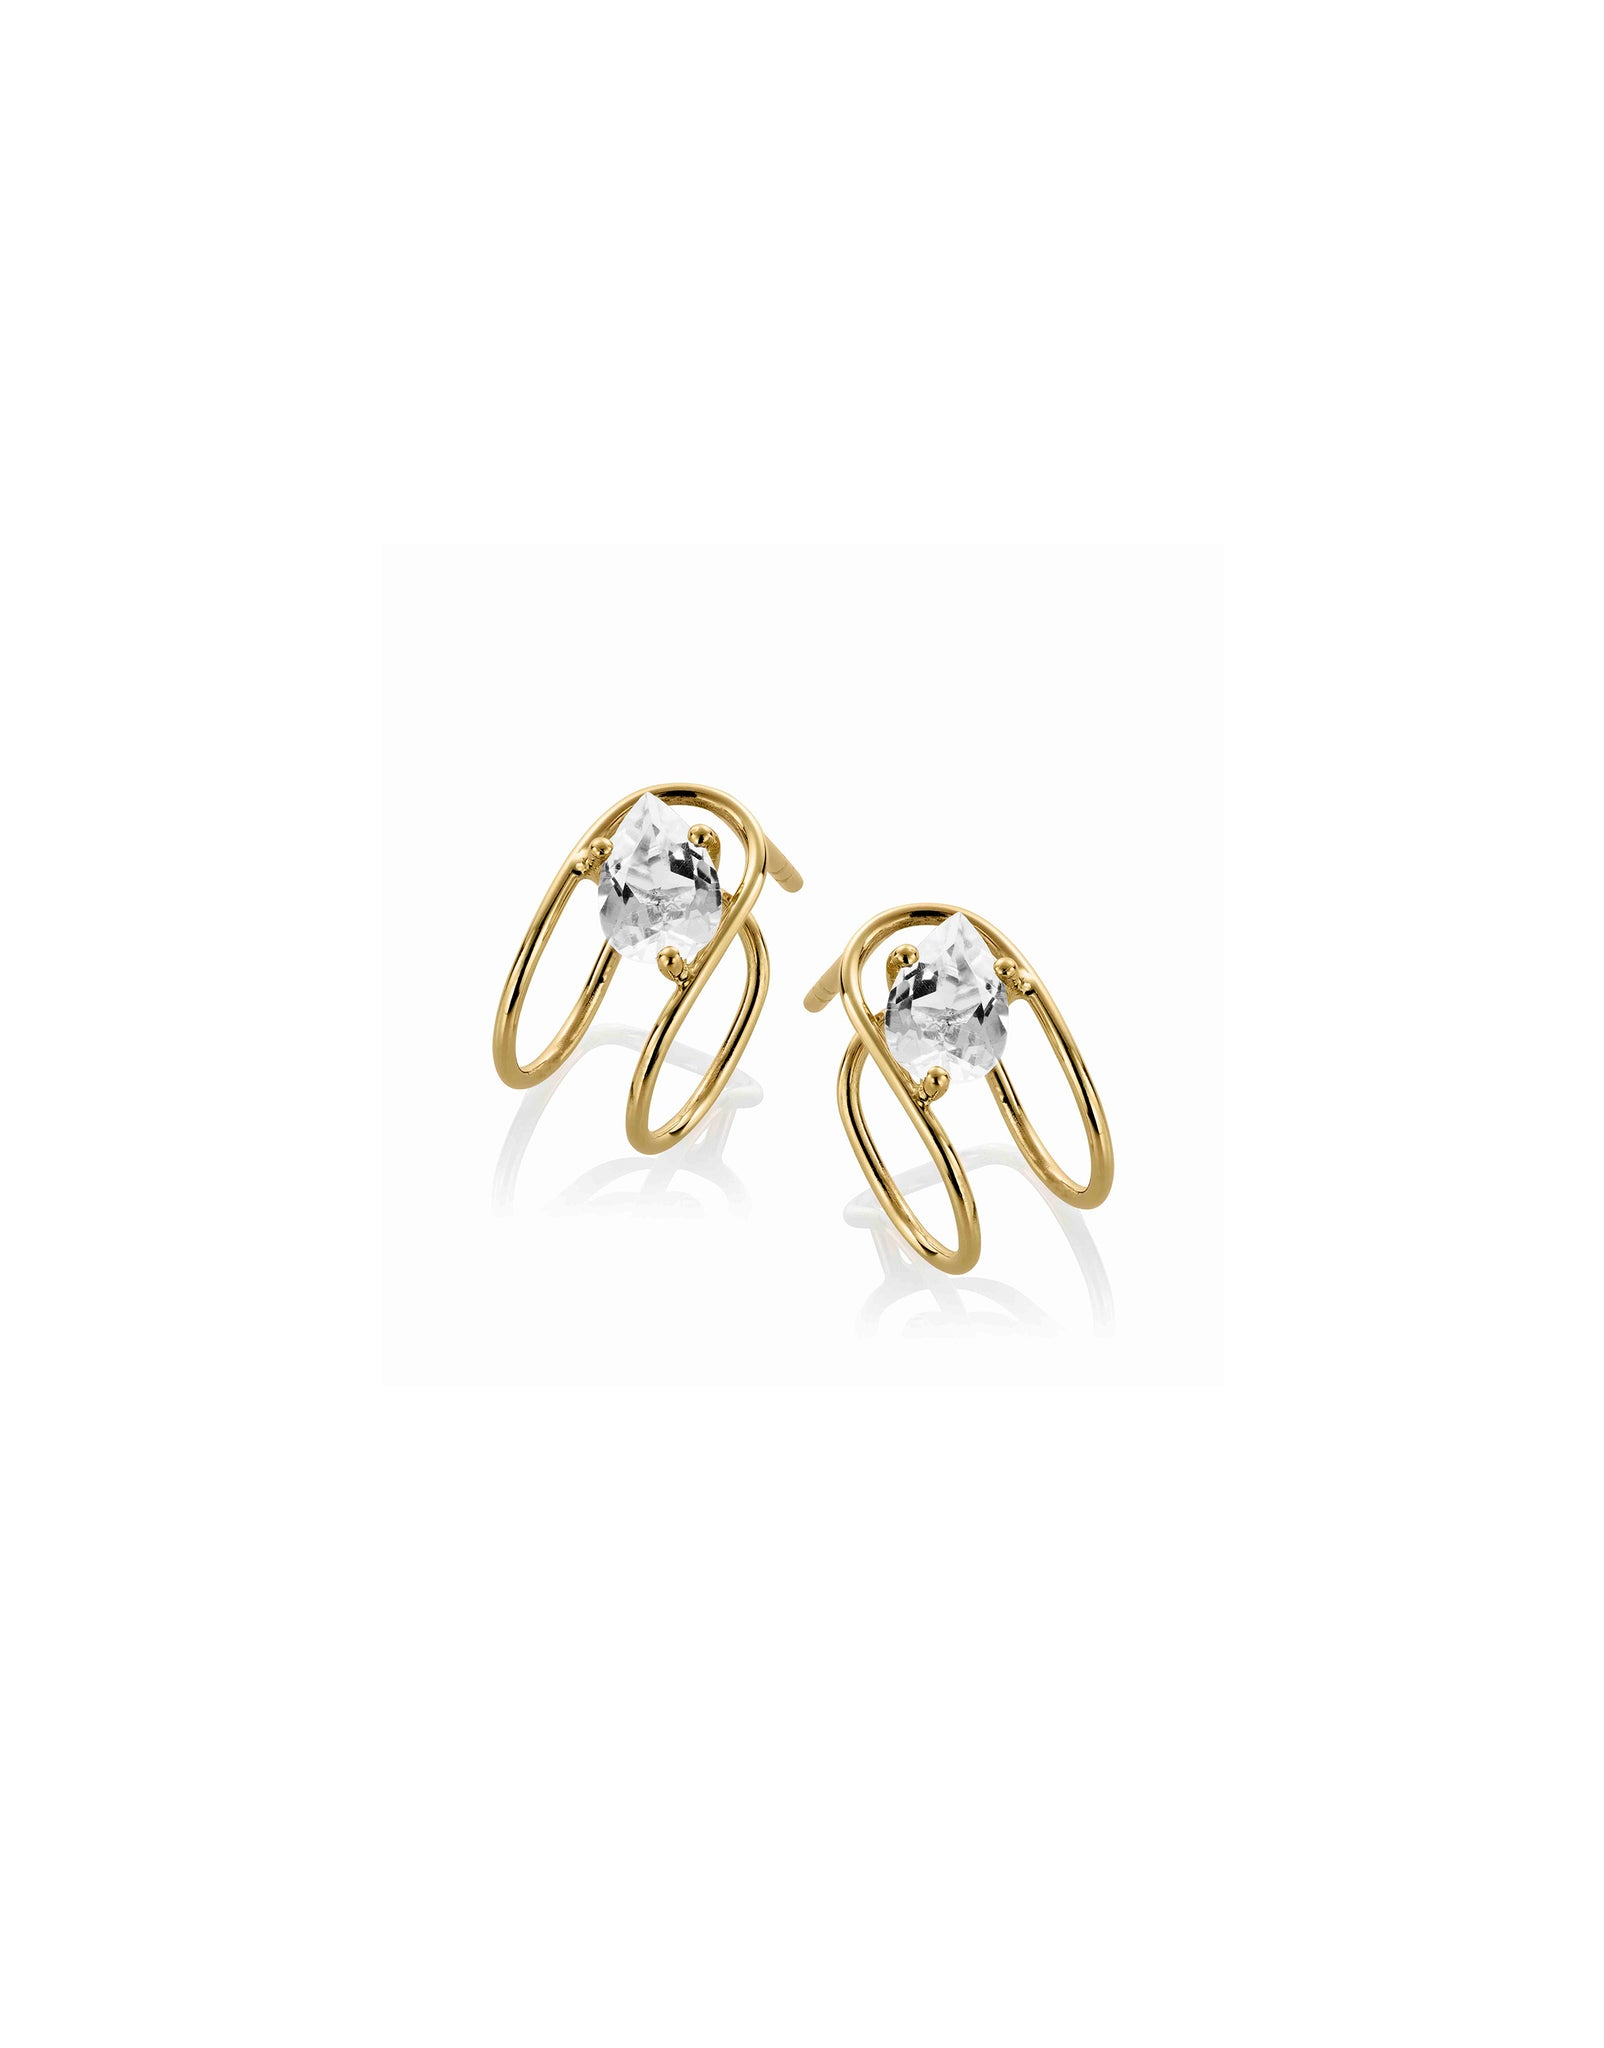 Earring 9K gold white topaz - Double c earrings topaz - Nayestones